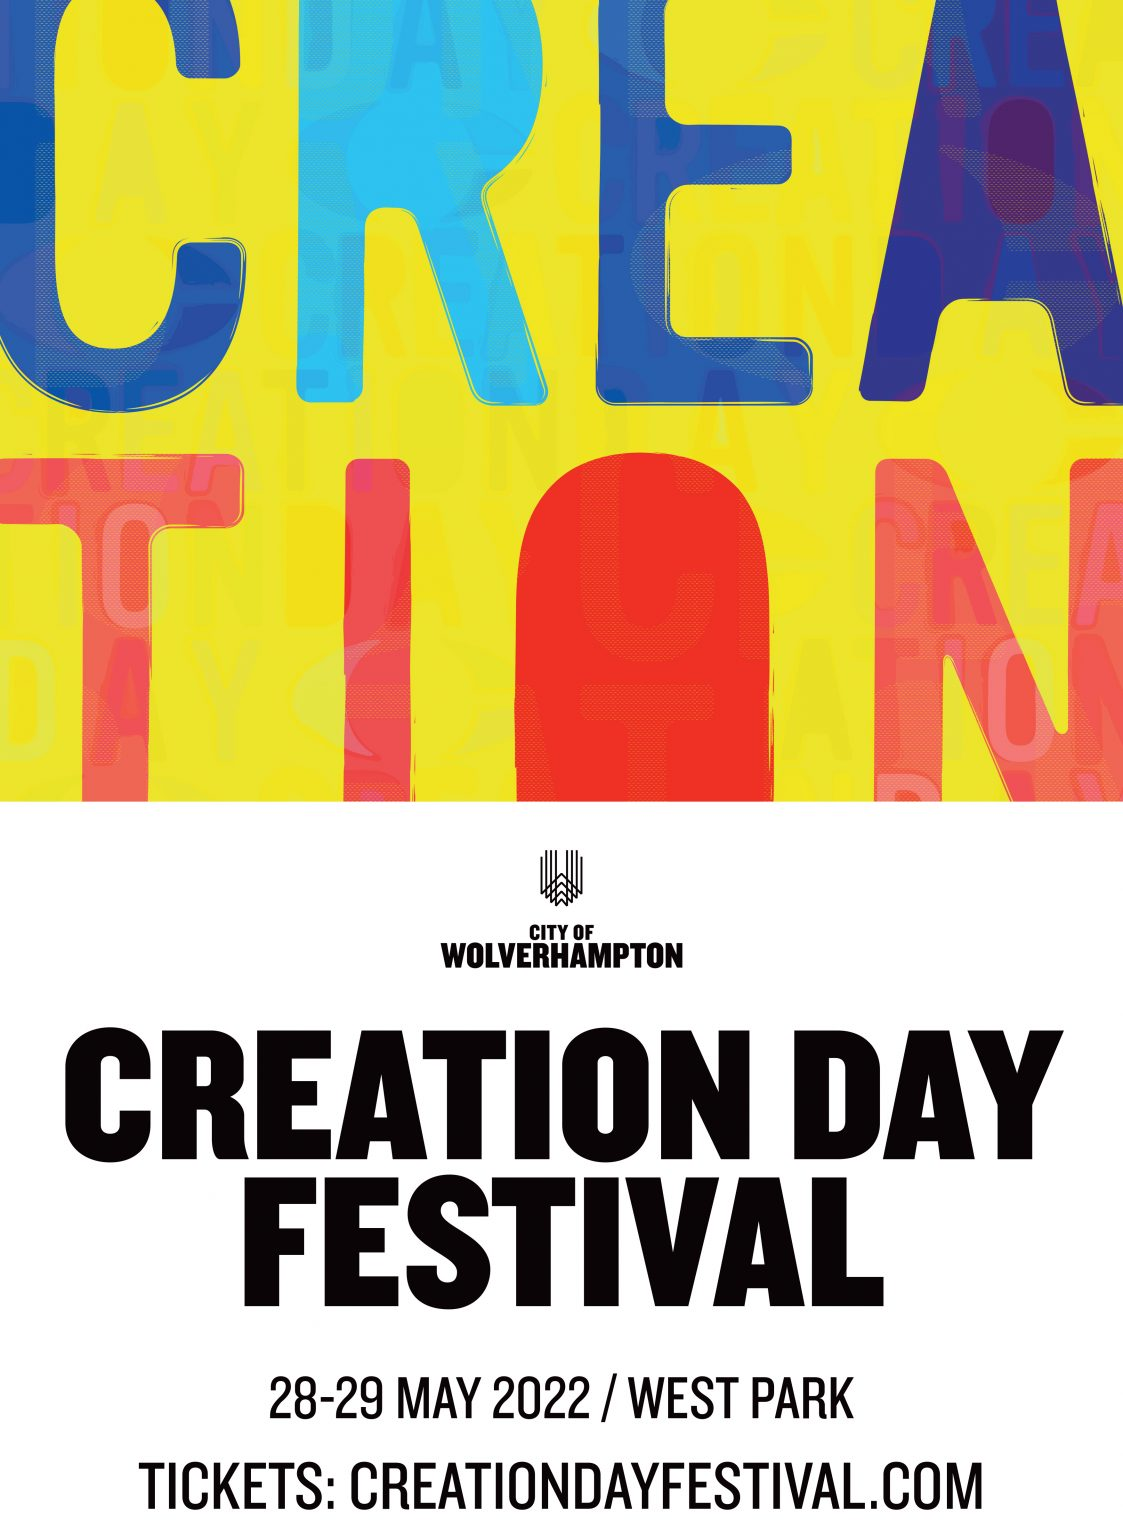 Creation day updated 2022 poster with white footer